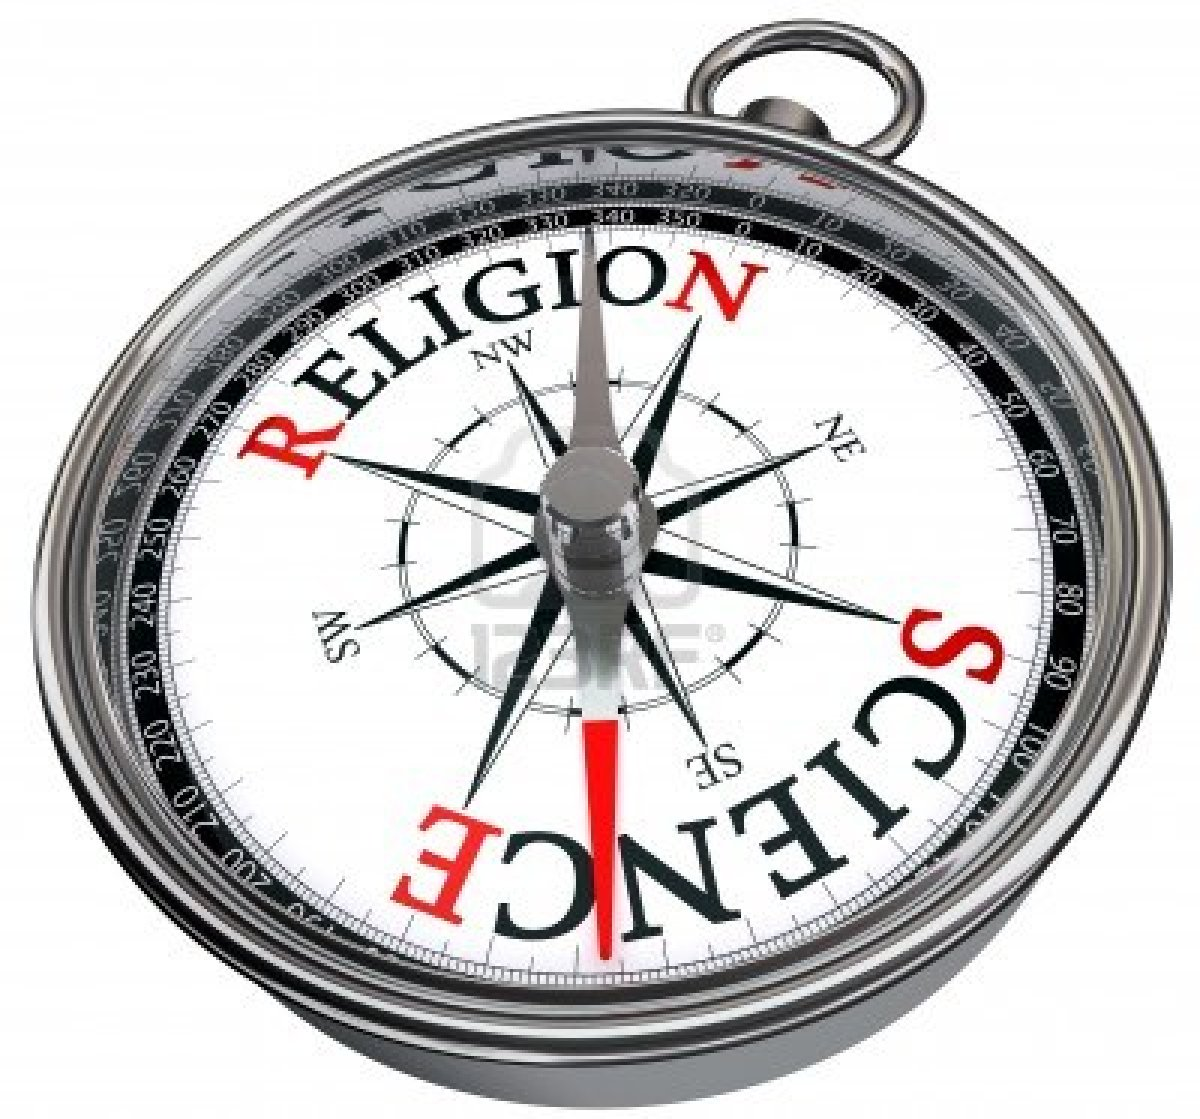 541 words short essay on Science and Religion